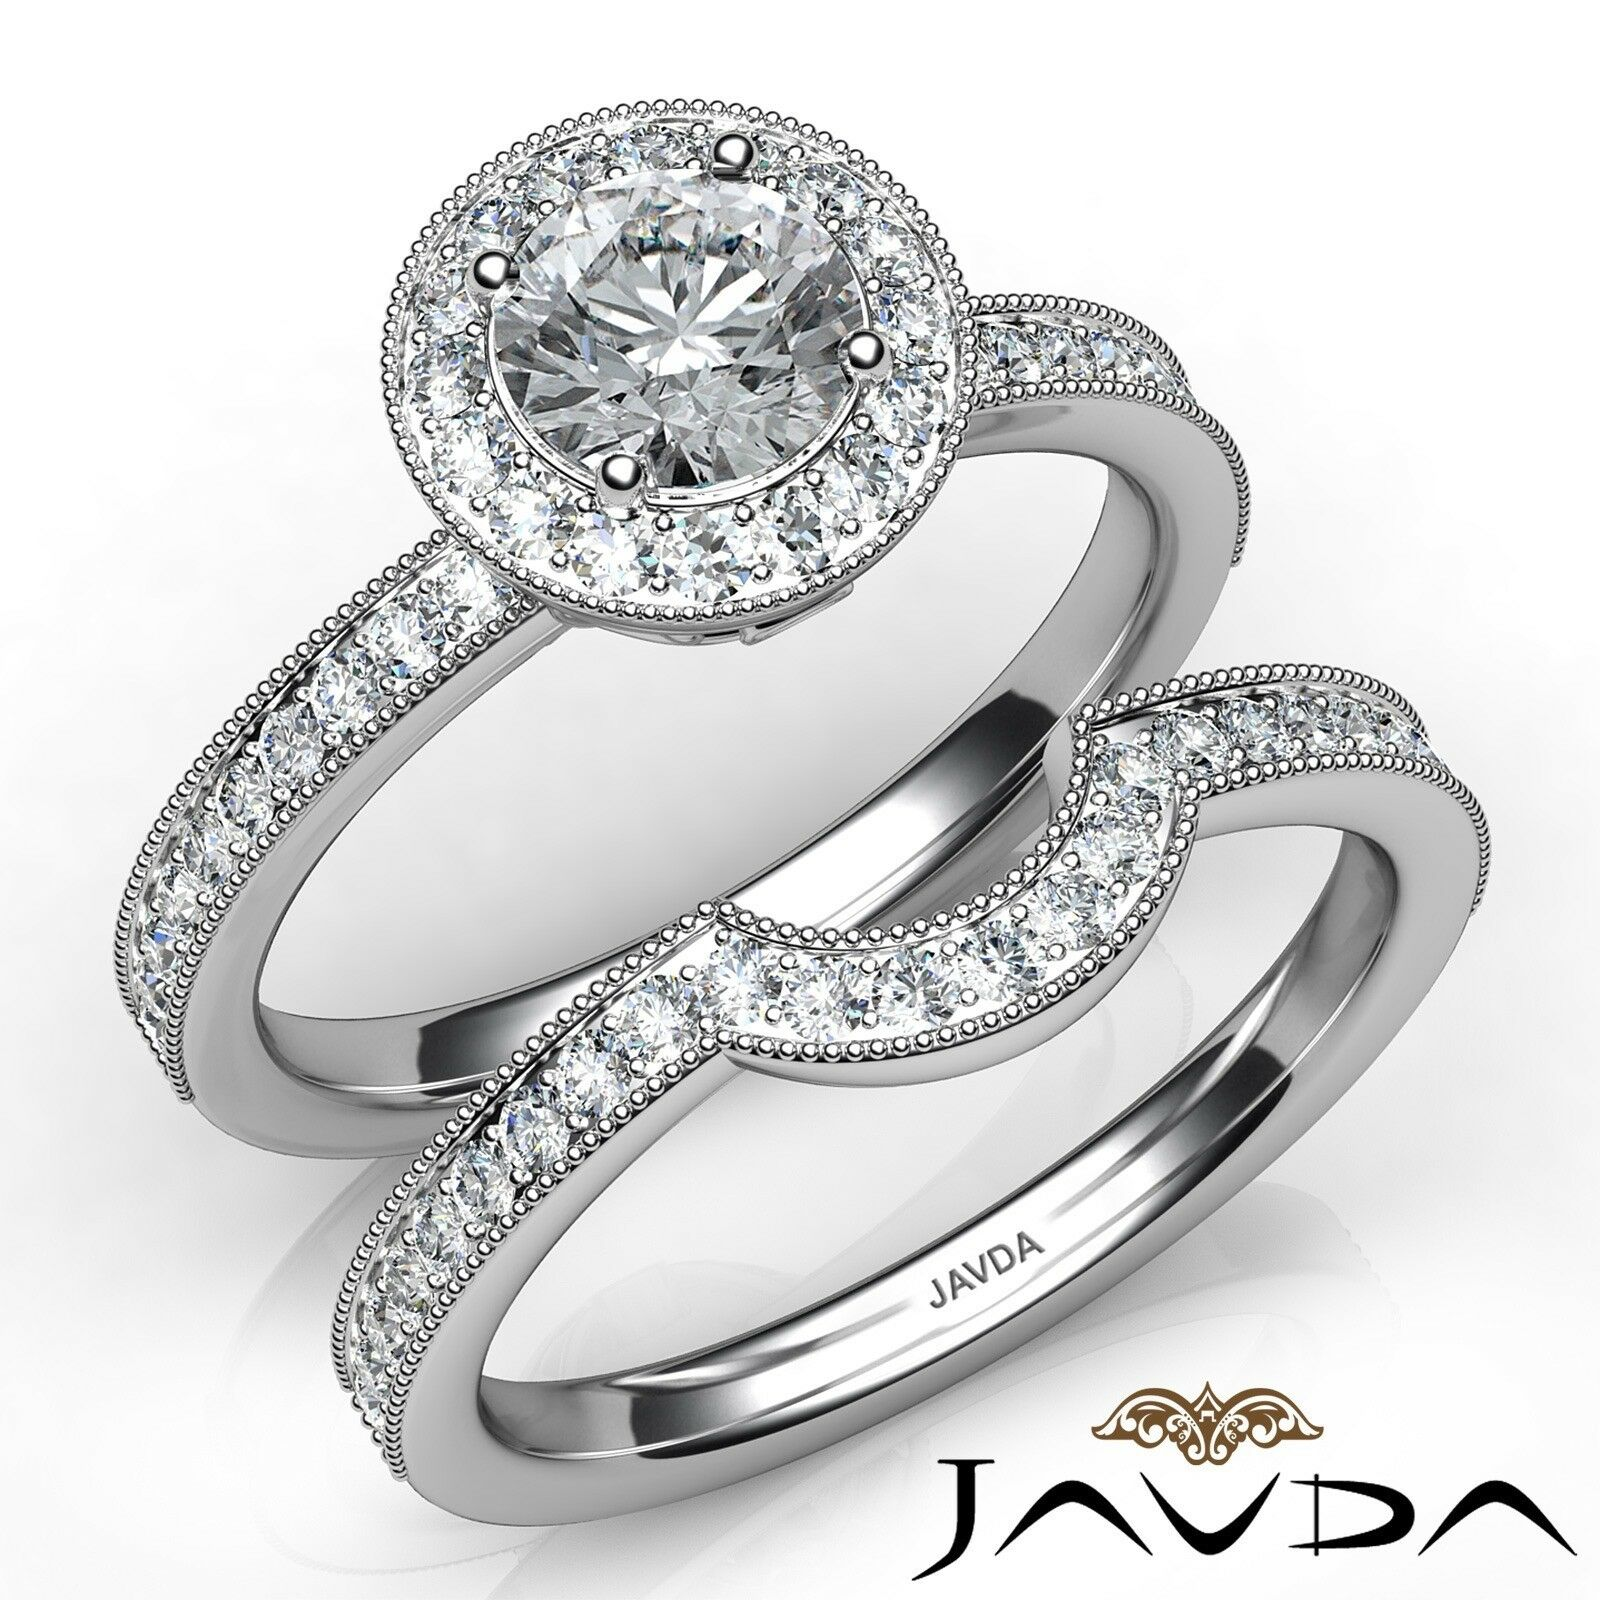 1.6ctw Halo Pave Milgrain Bridal Round Diamond Engagement Ring GIA H-VS1 Gold